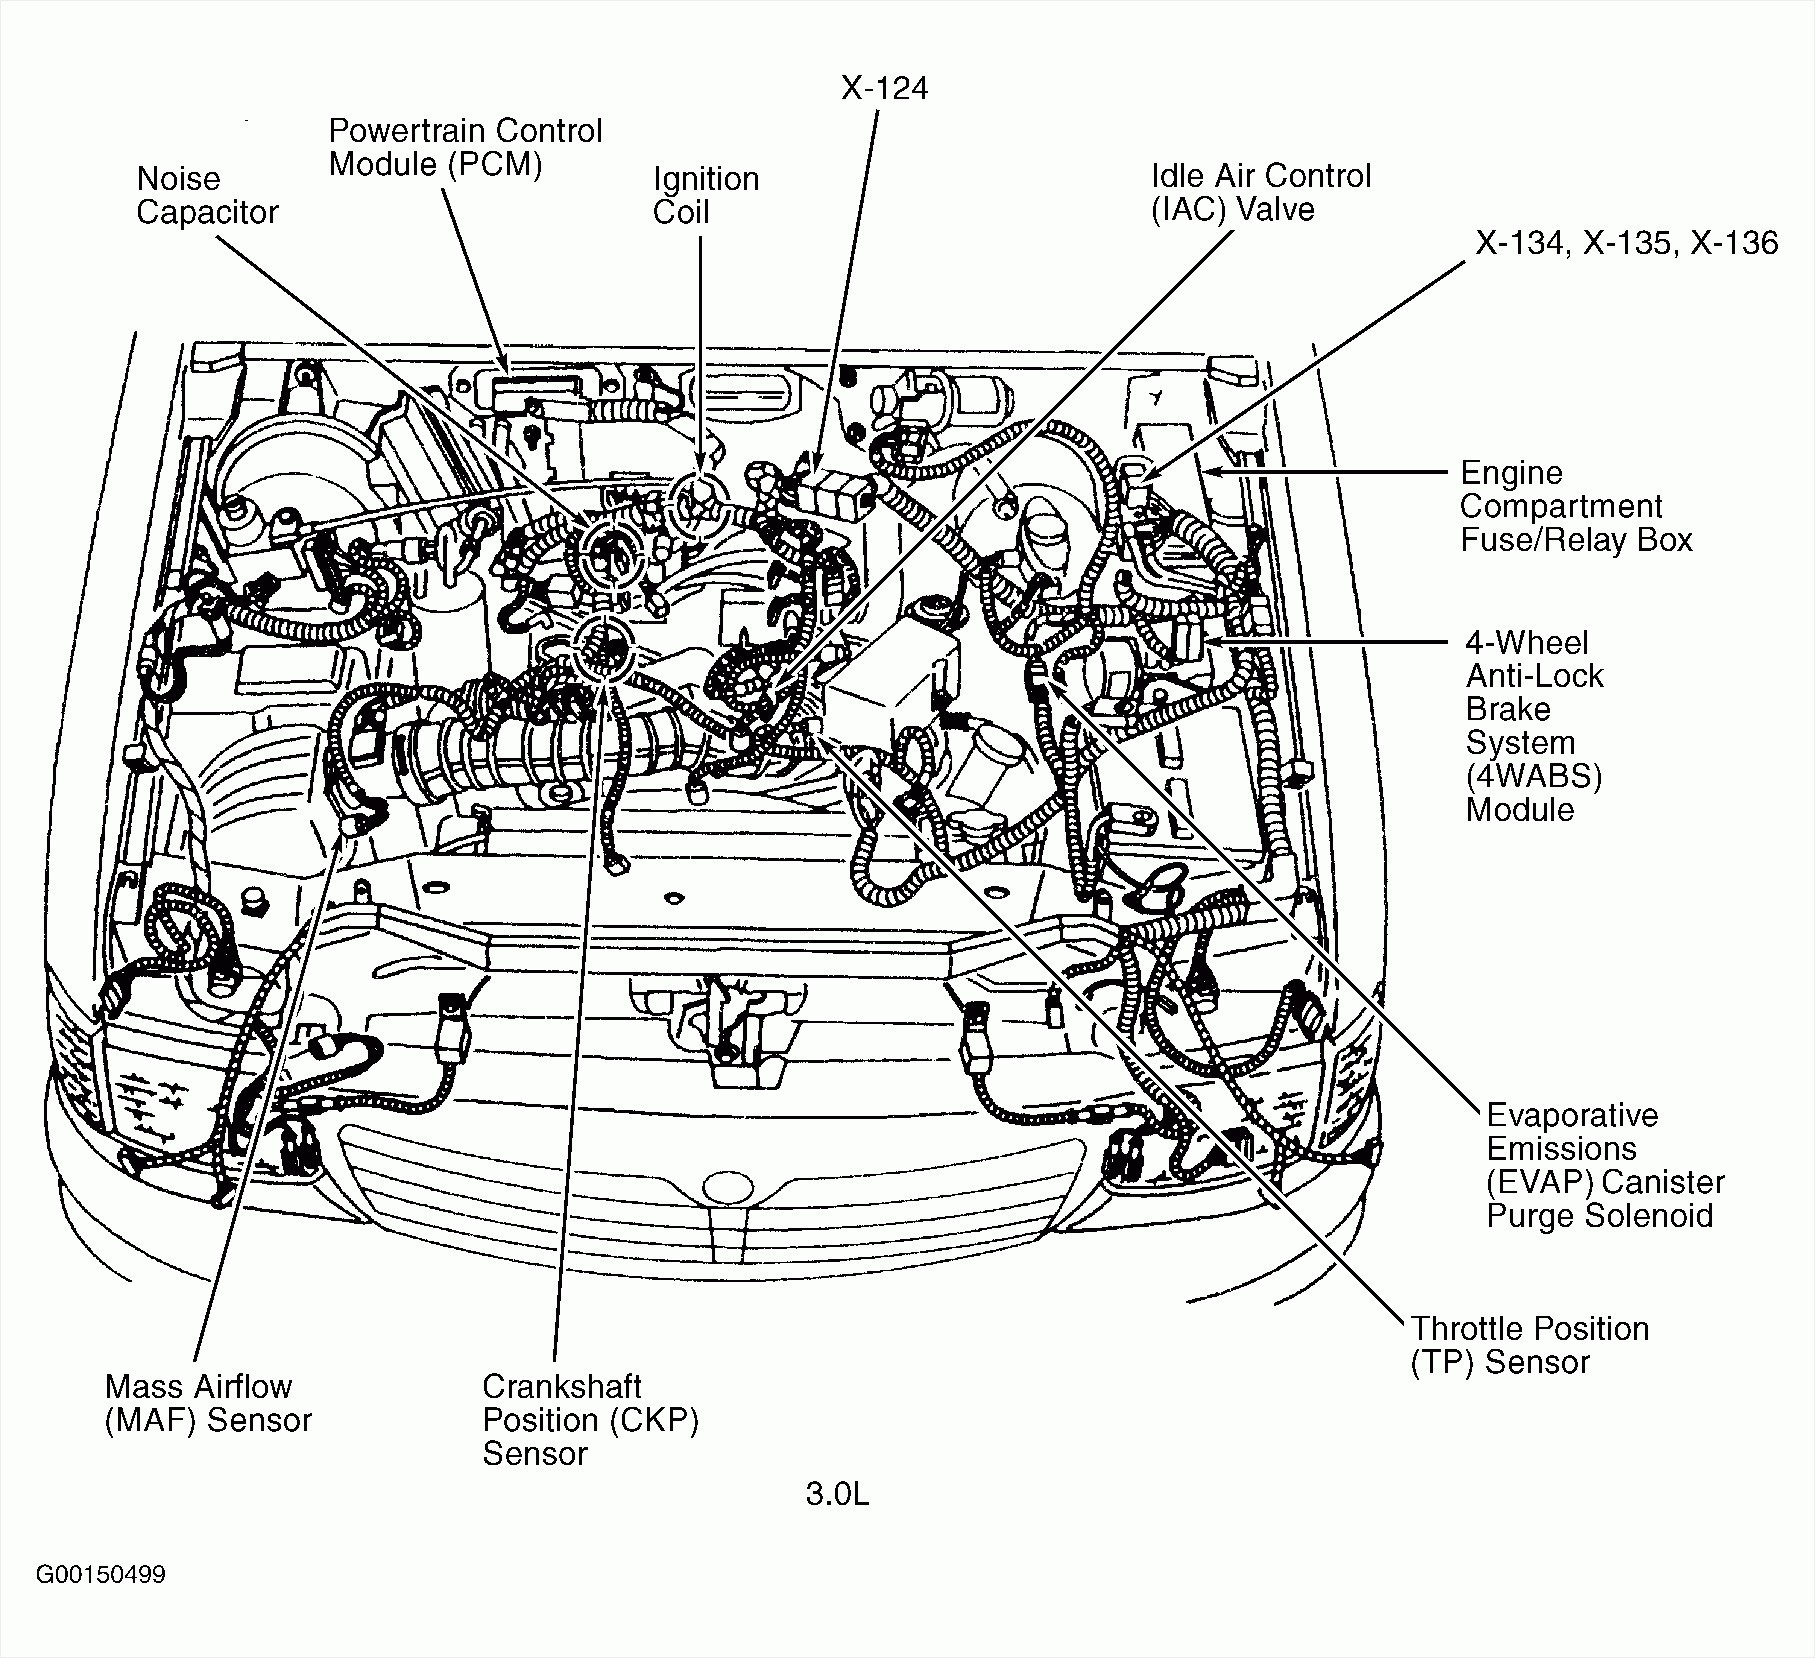 hight resolution of 3l engine diagram wiring diagram expert 3l engine diagram wiring diagram for you 3l engine diagram